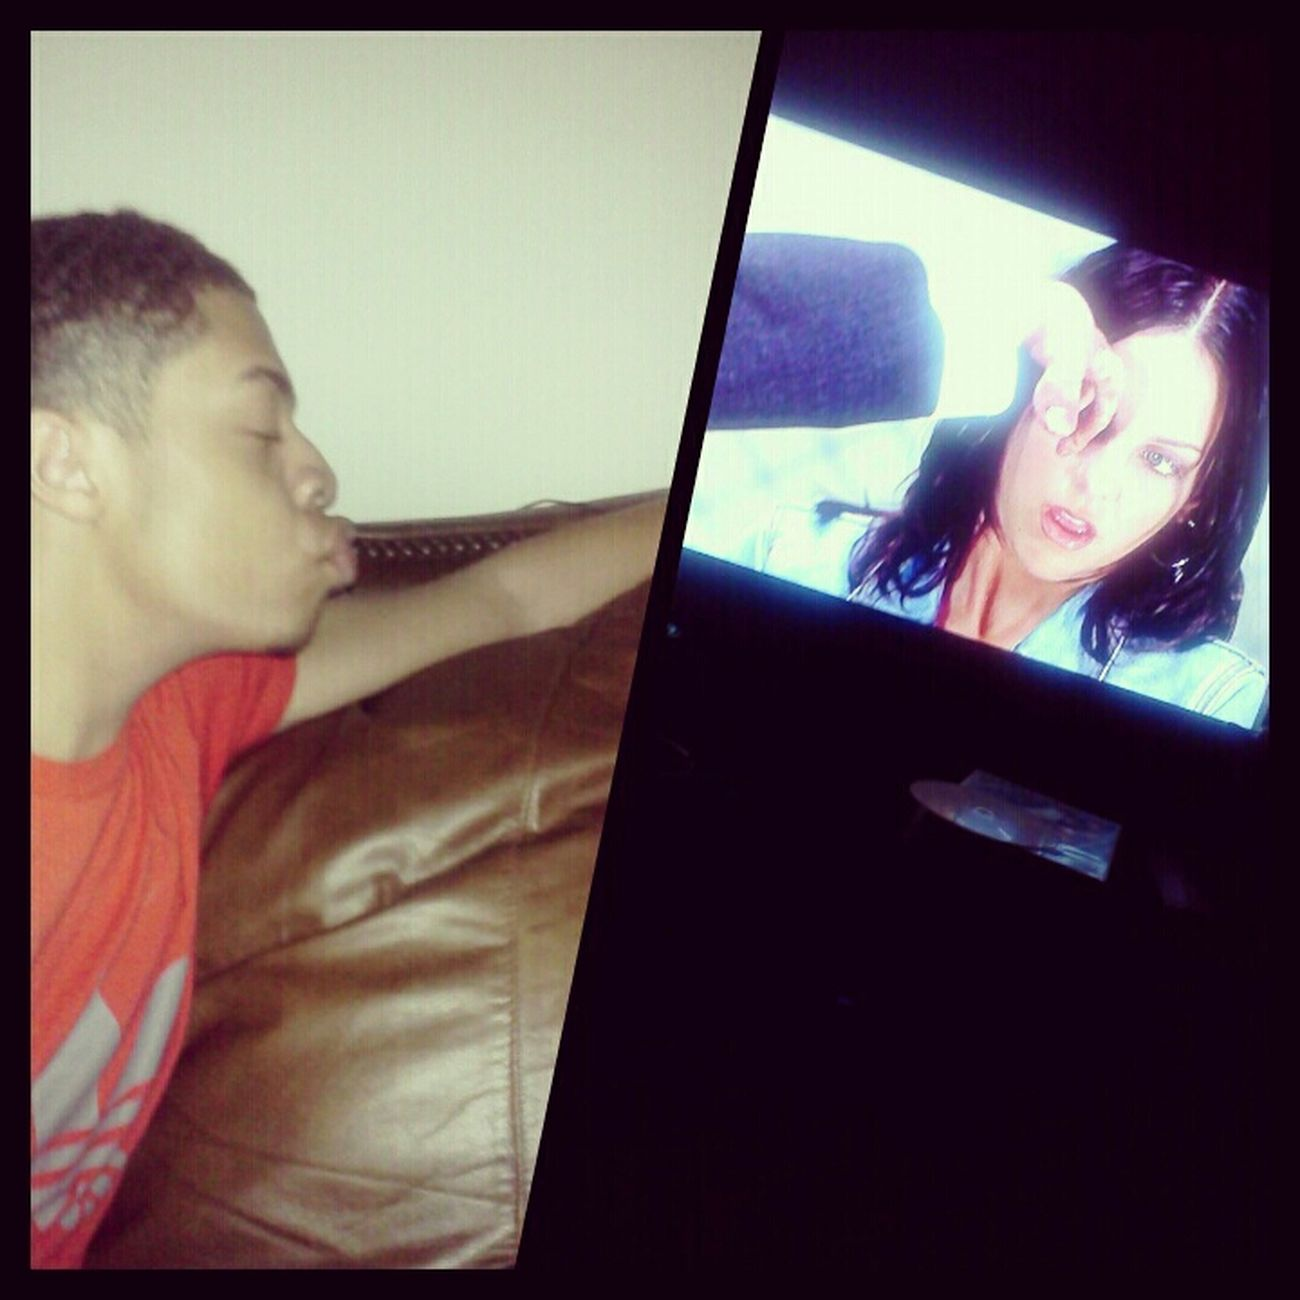 Whessssup ; anyone wanna join ?; Watching Scary Movie 2 ♥ .. HMU doee >